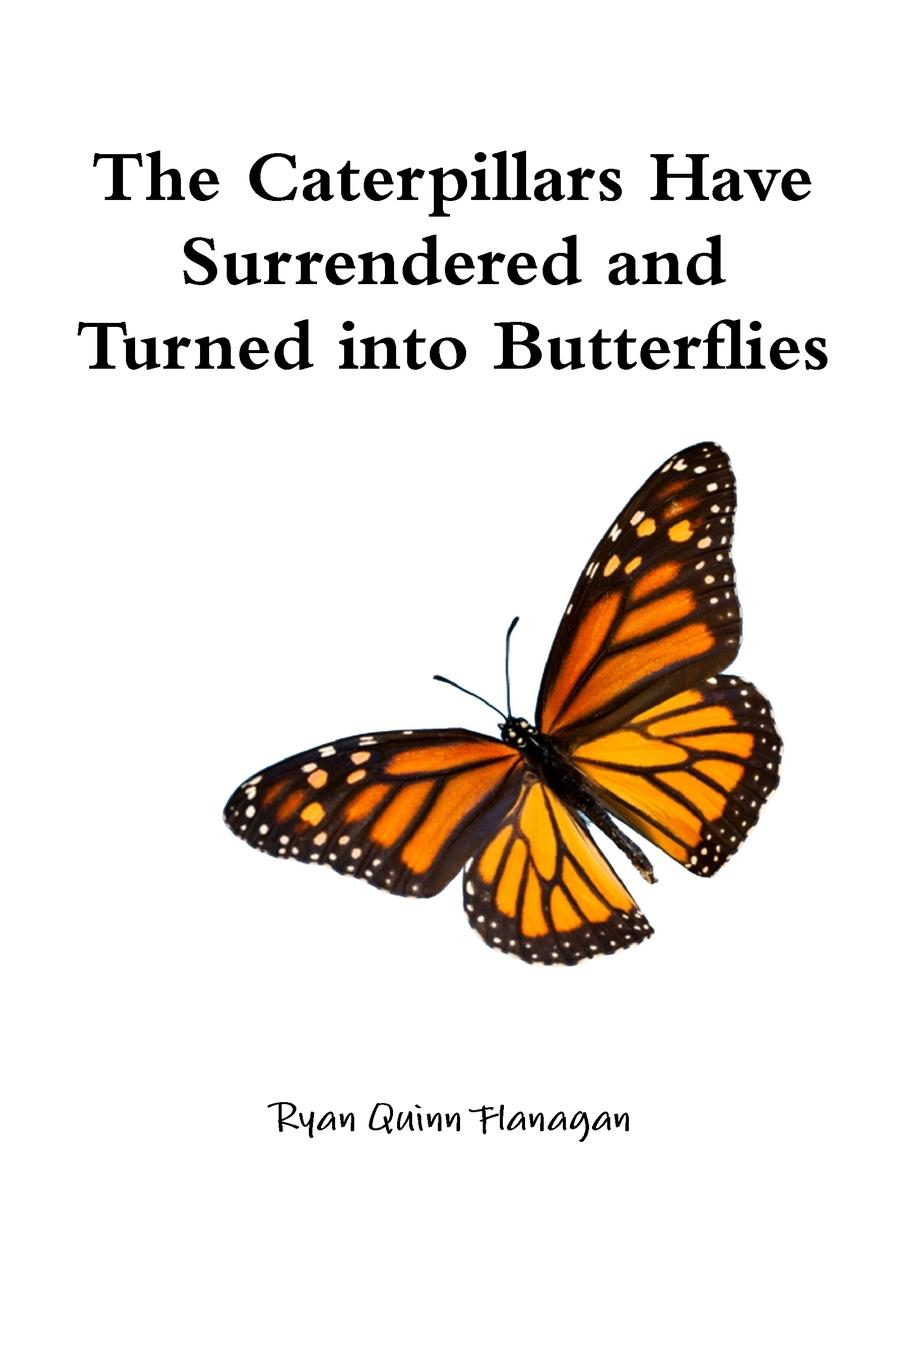 Ryan Quinn Flanagan The Caterpillars Have Surrendered and Turned into Butterflies